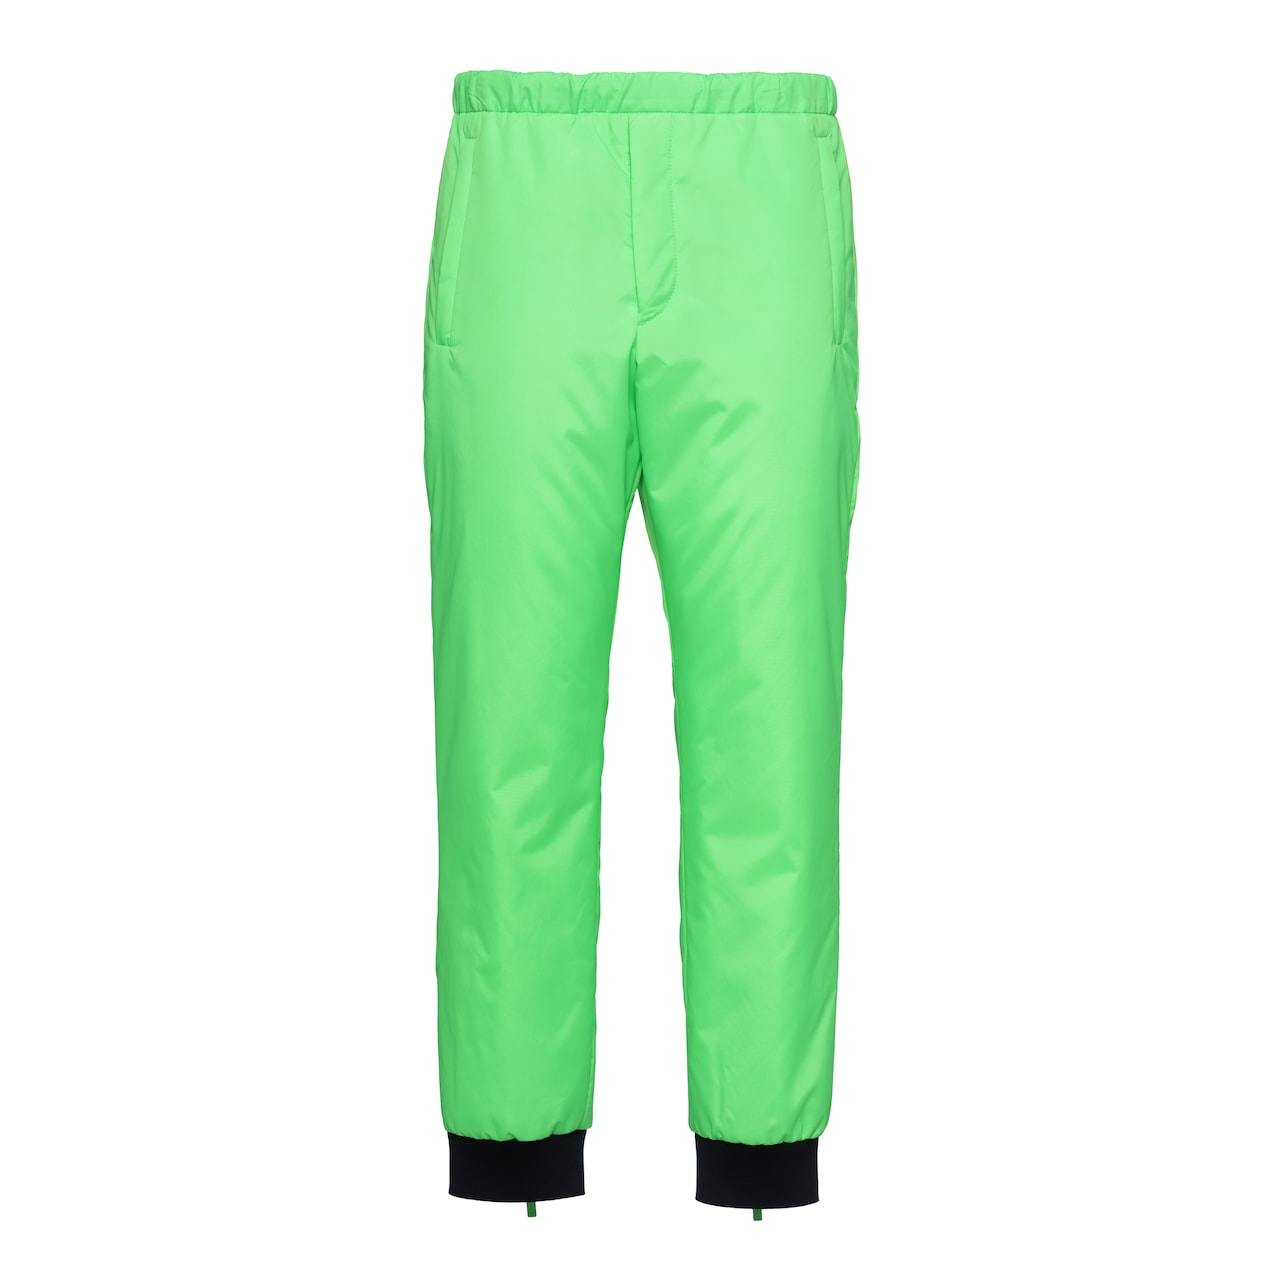 Padded technical fabric trousers